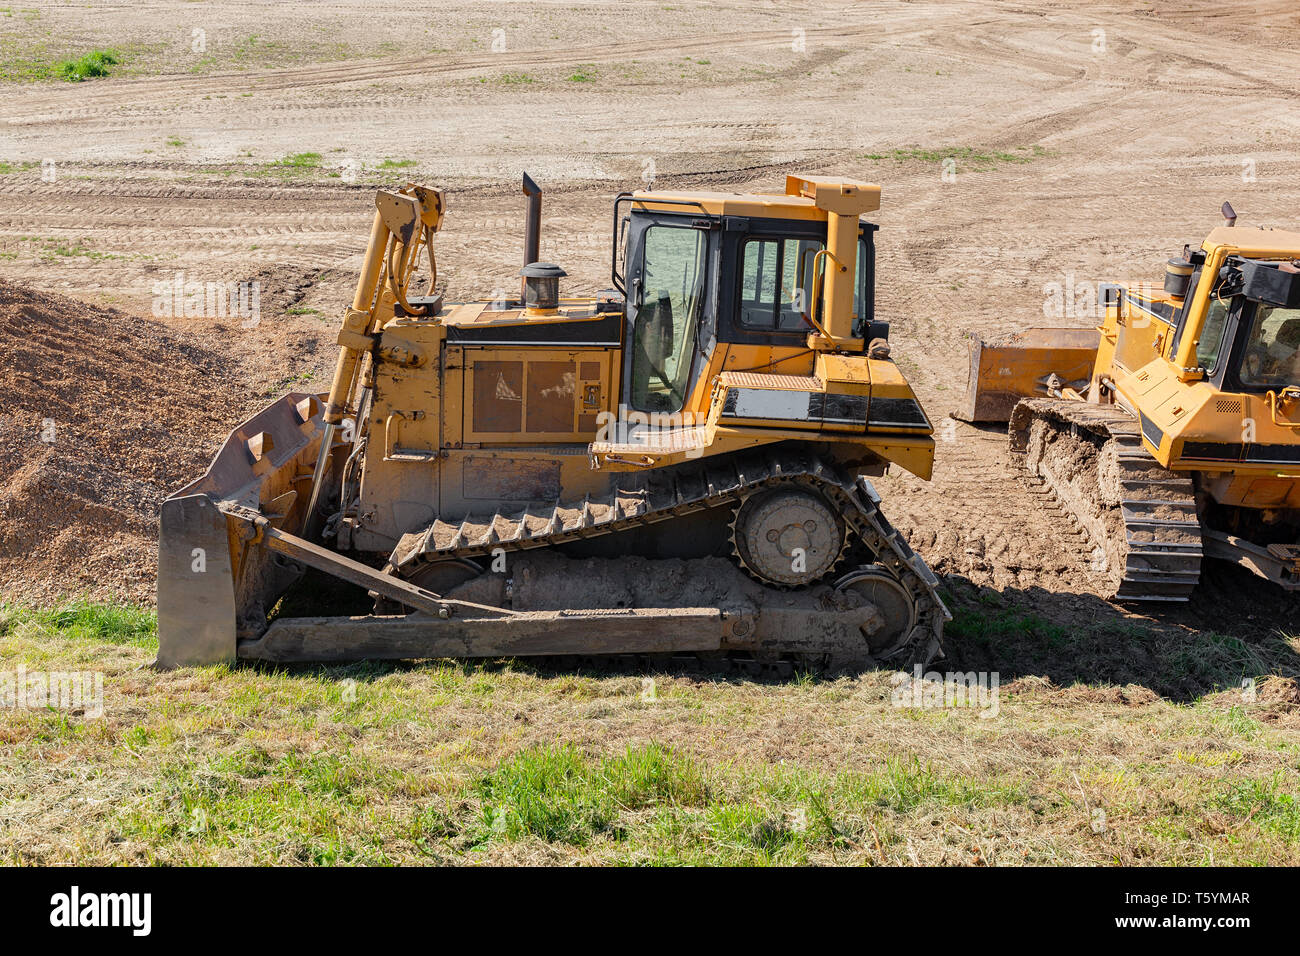 Yellow dozer on a dirt terrain with small patches of green grass - Stock Image